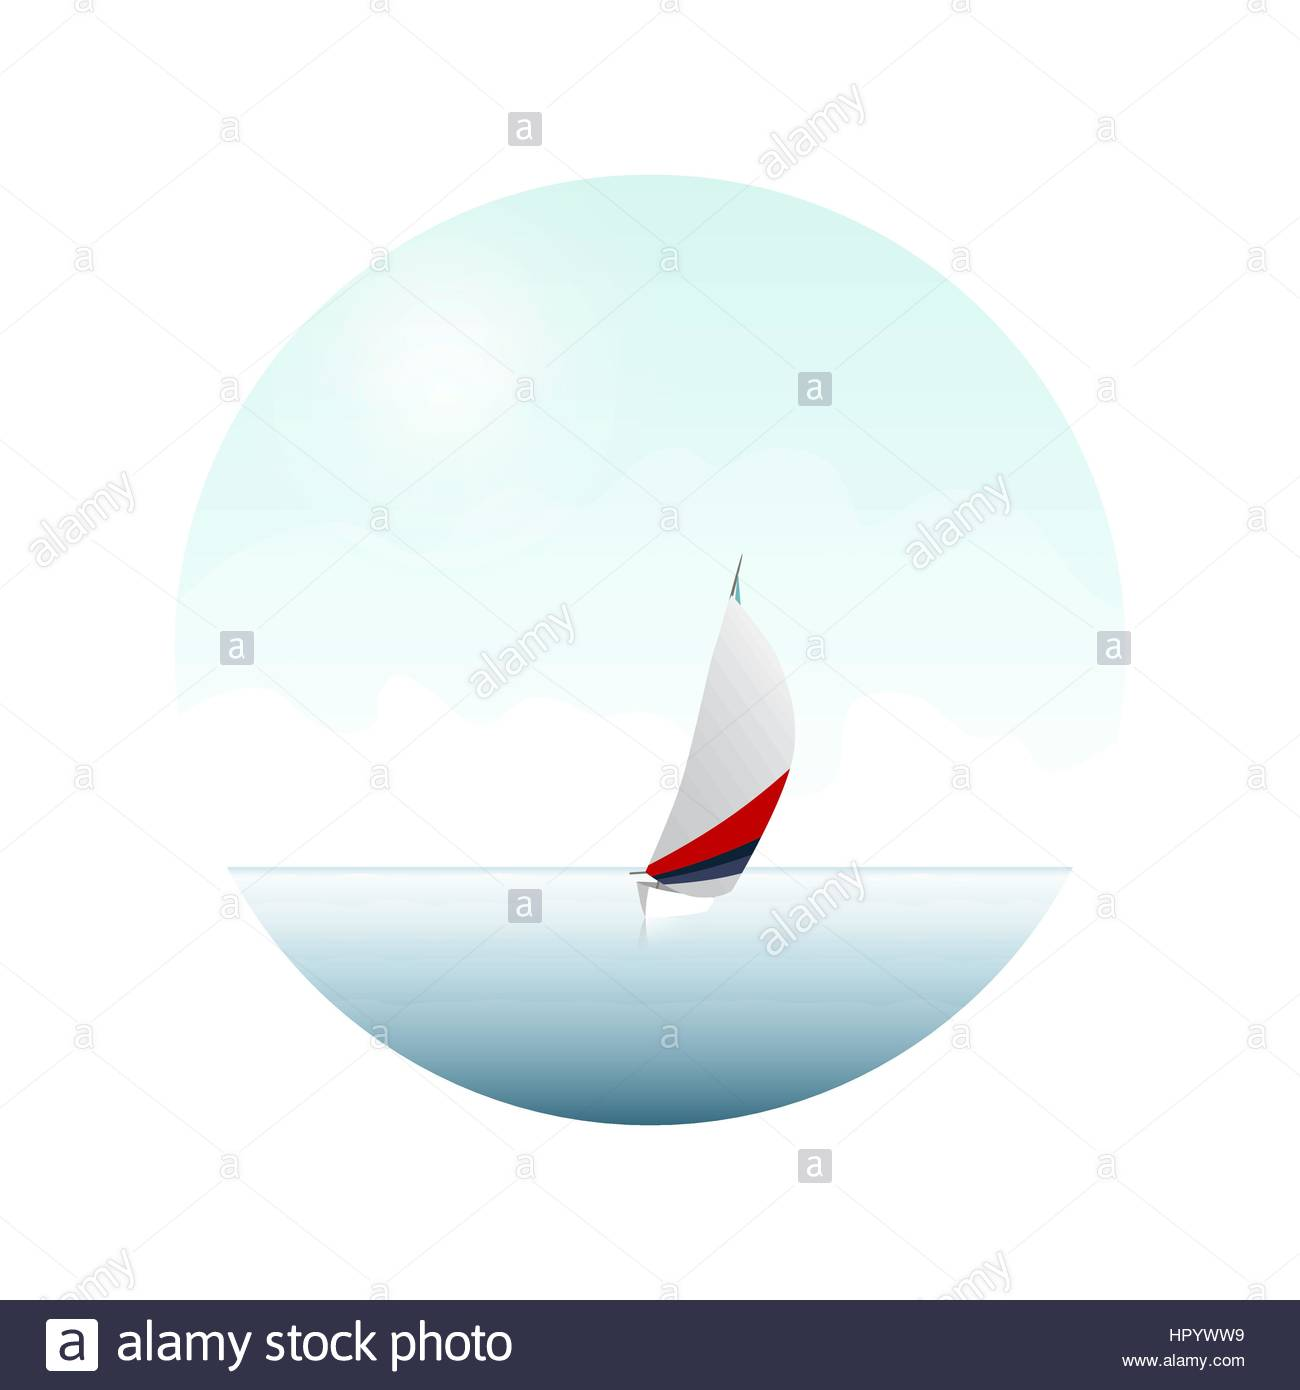 Sailing boat on the blue sea. Yacht and ocean. - Stock Image